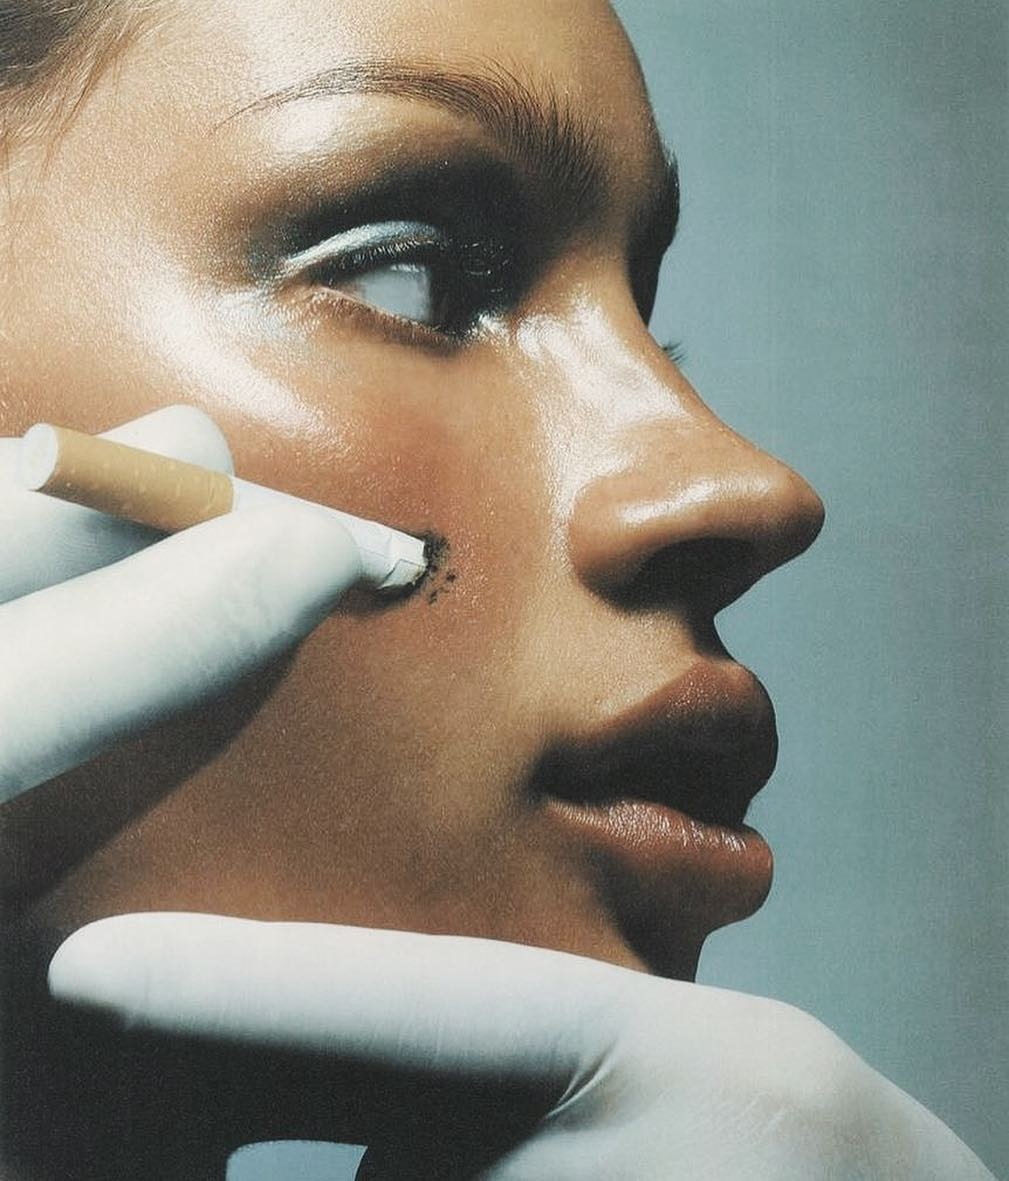 Forget Botox, here's a guide to no-needle skincare | Dazed